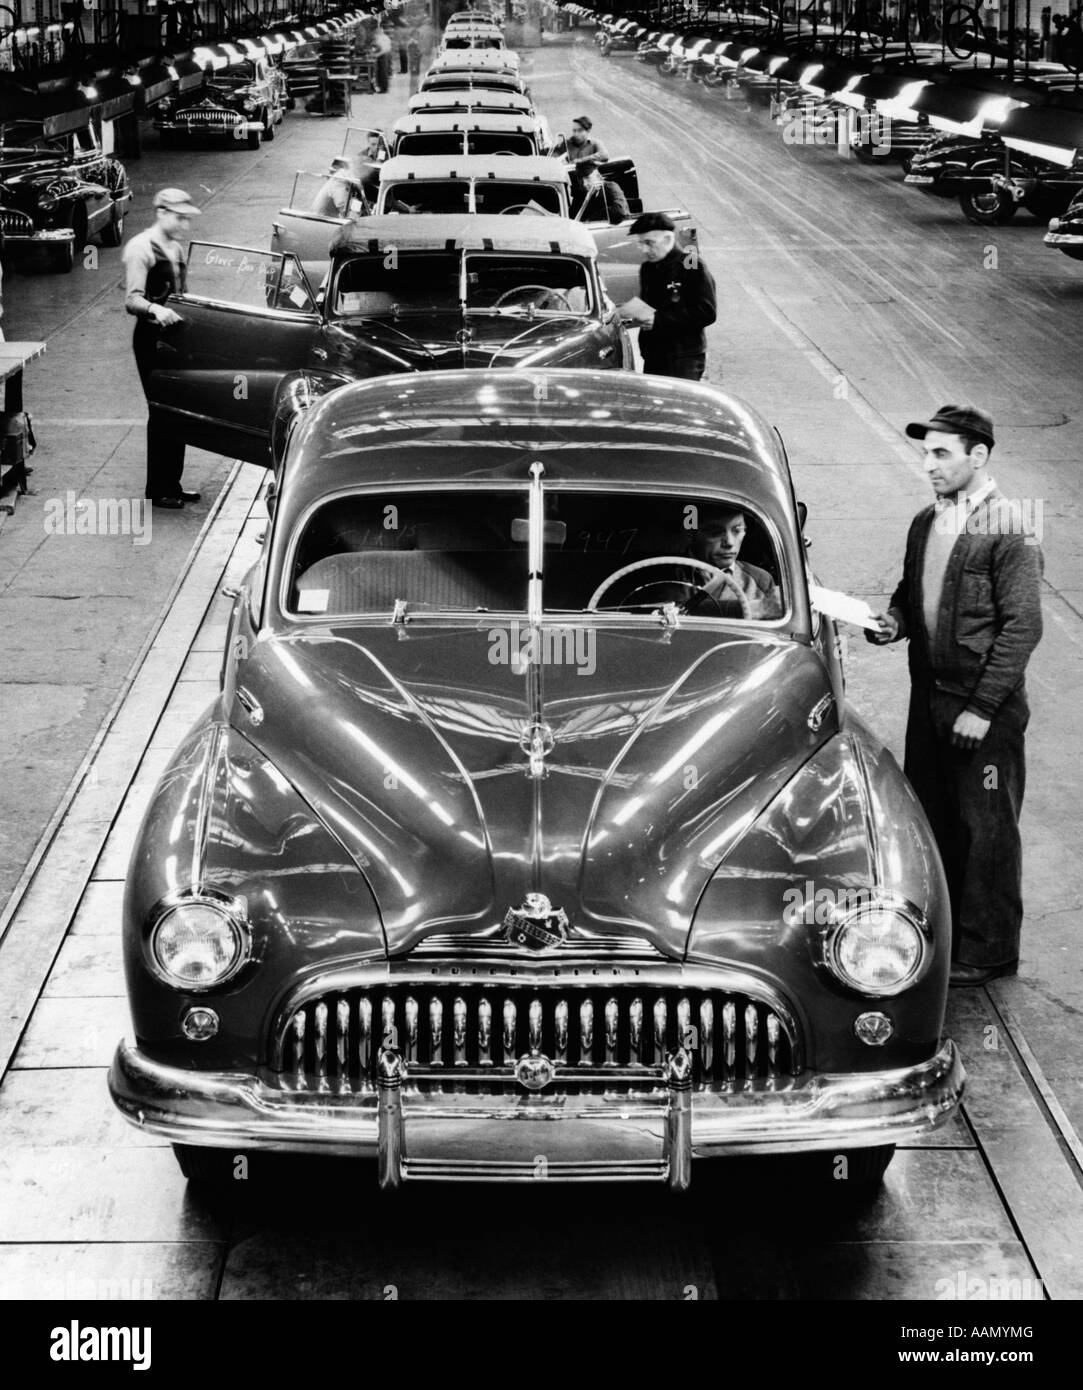 1950s buick automobile assembly line detroit michigan head on view stock image